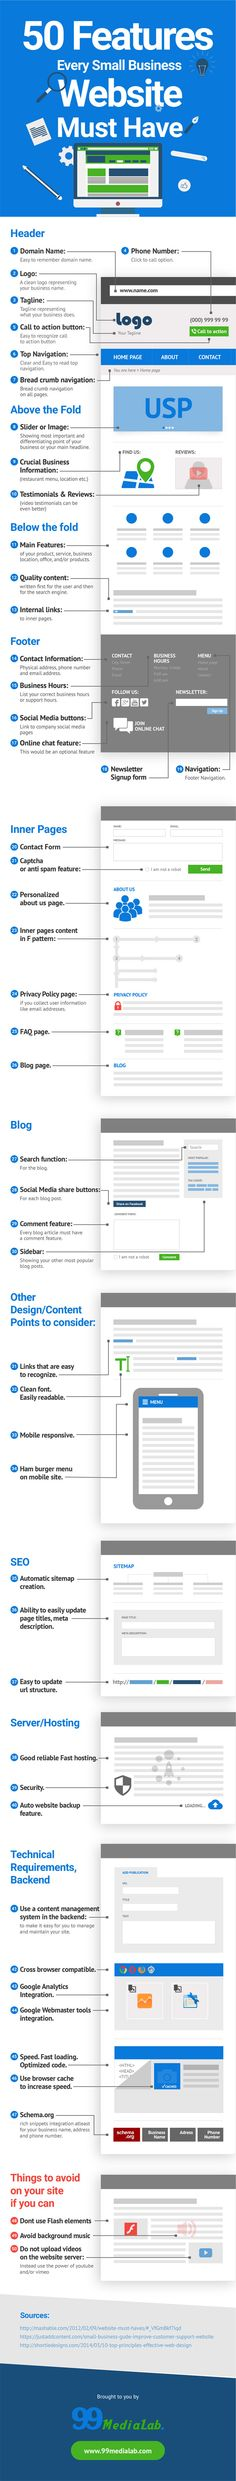 50 Features Your Small Business Website Must Have